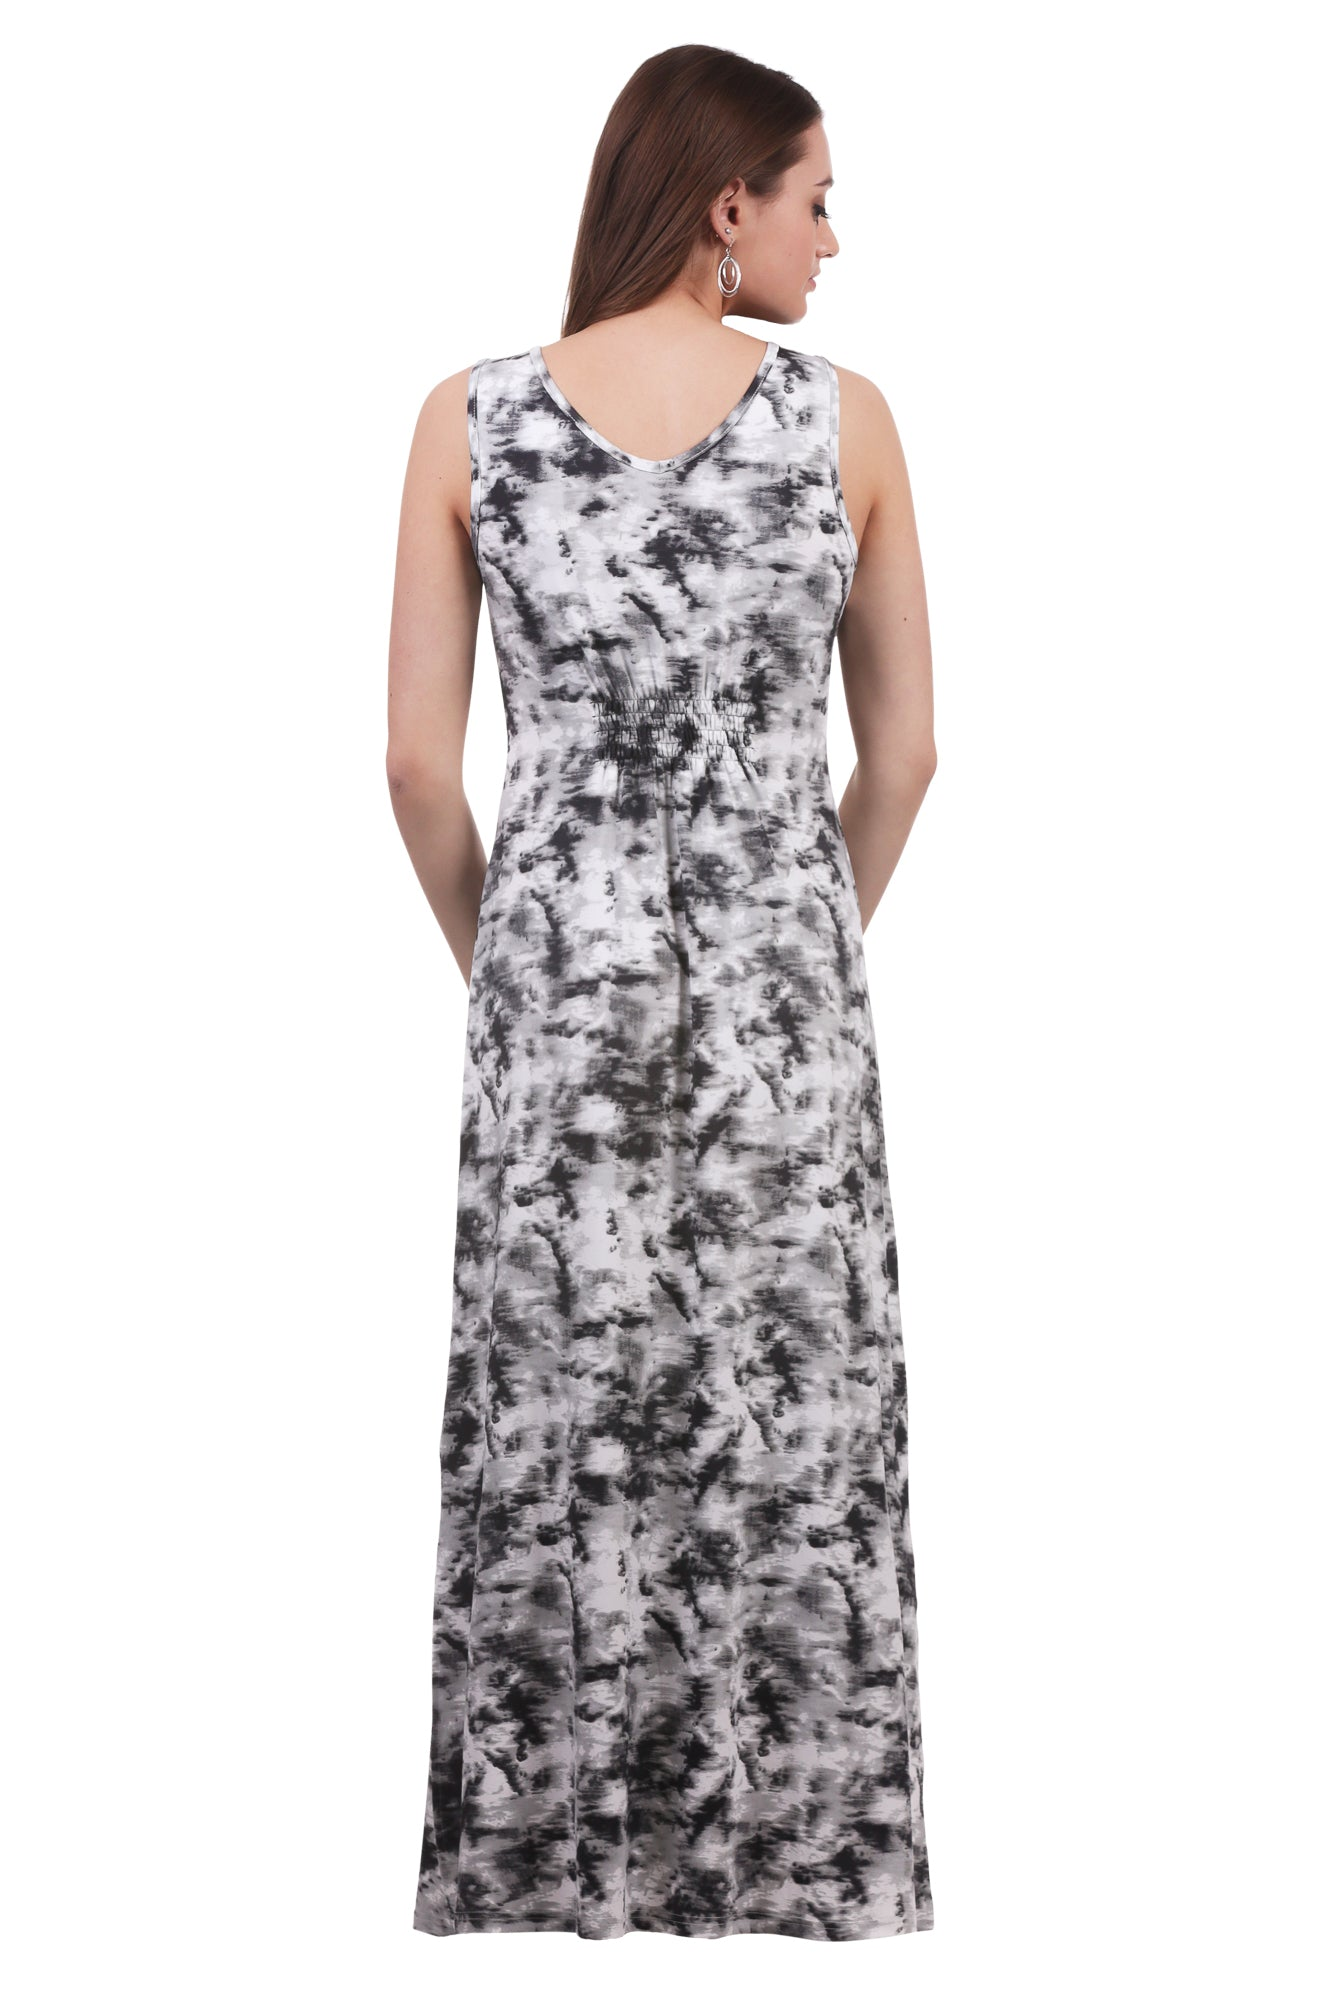 Black/White Maxi Smocked Button Dress w/ Slits | Cloud Print | Neesha